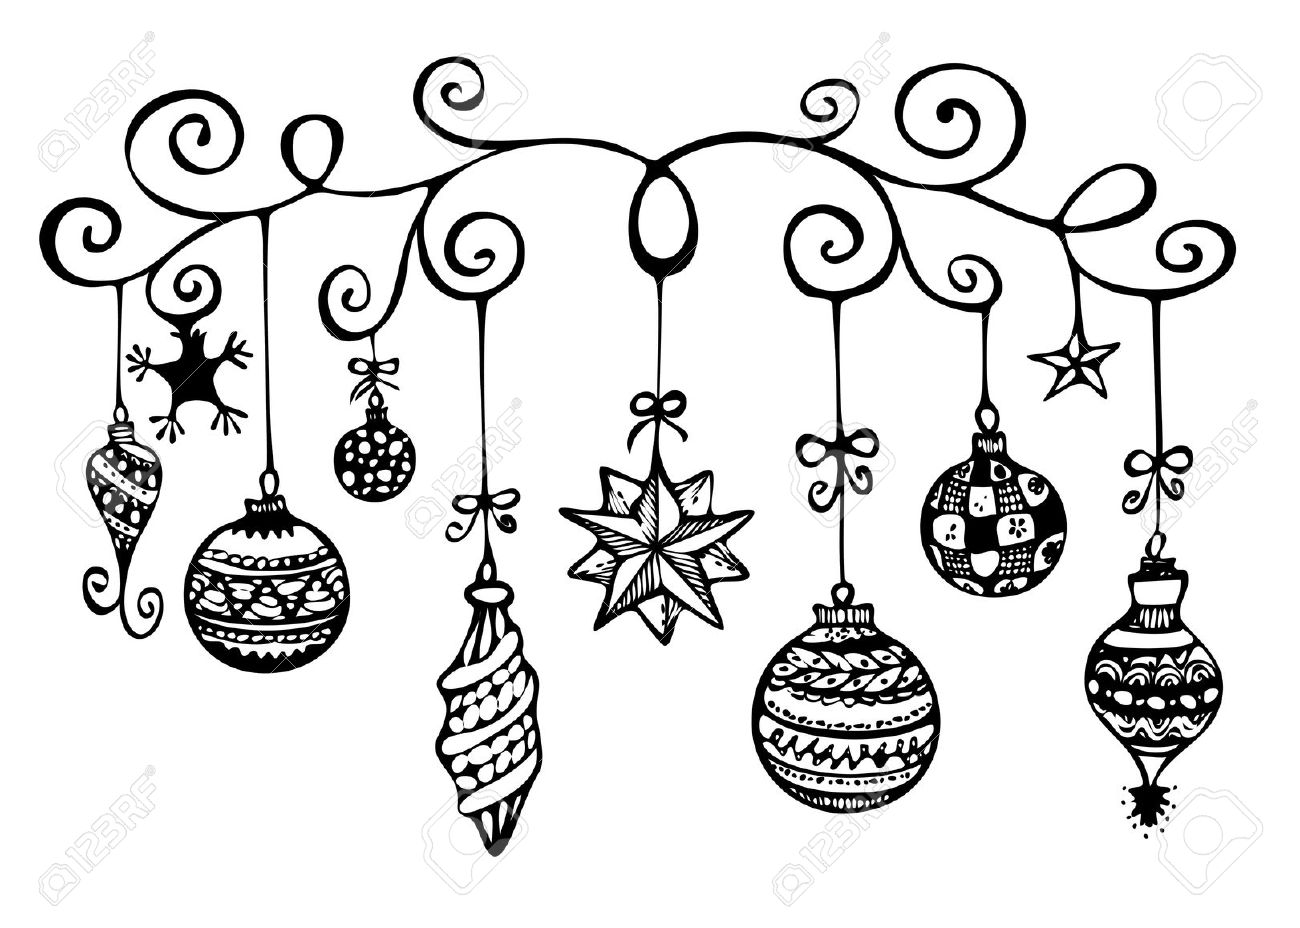 Christmas Ornament Clip Art Black And White Black And White Ornaments Clipart Clipground